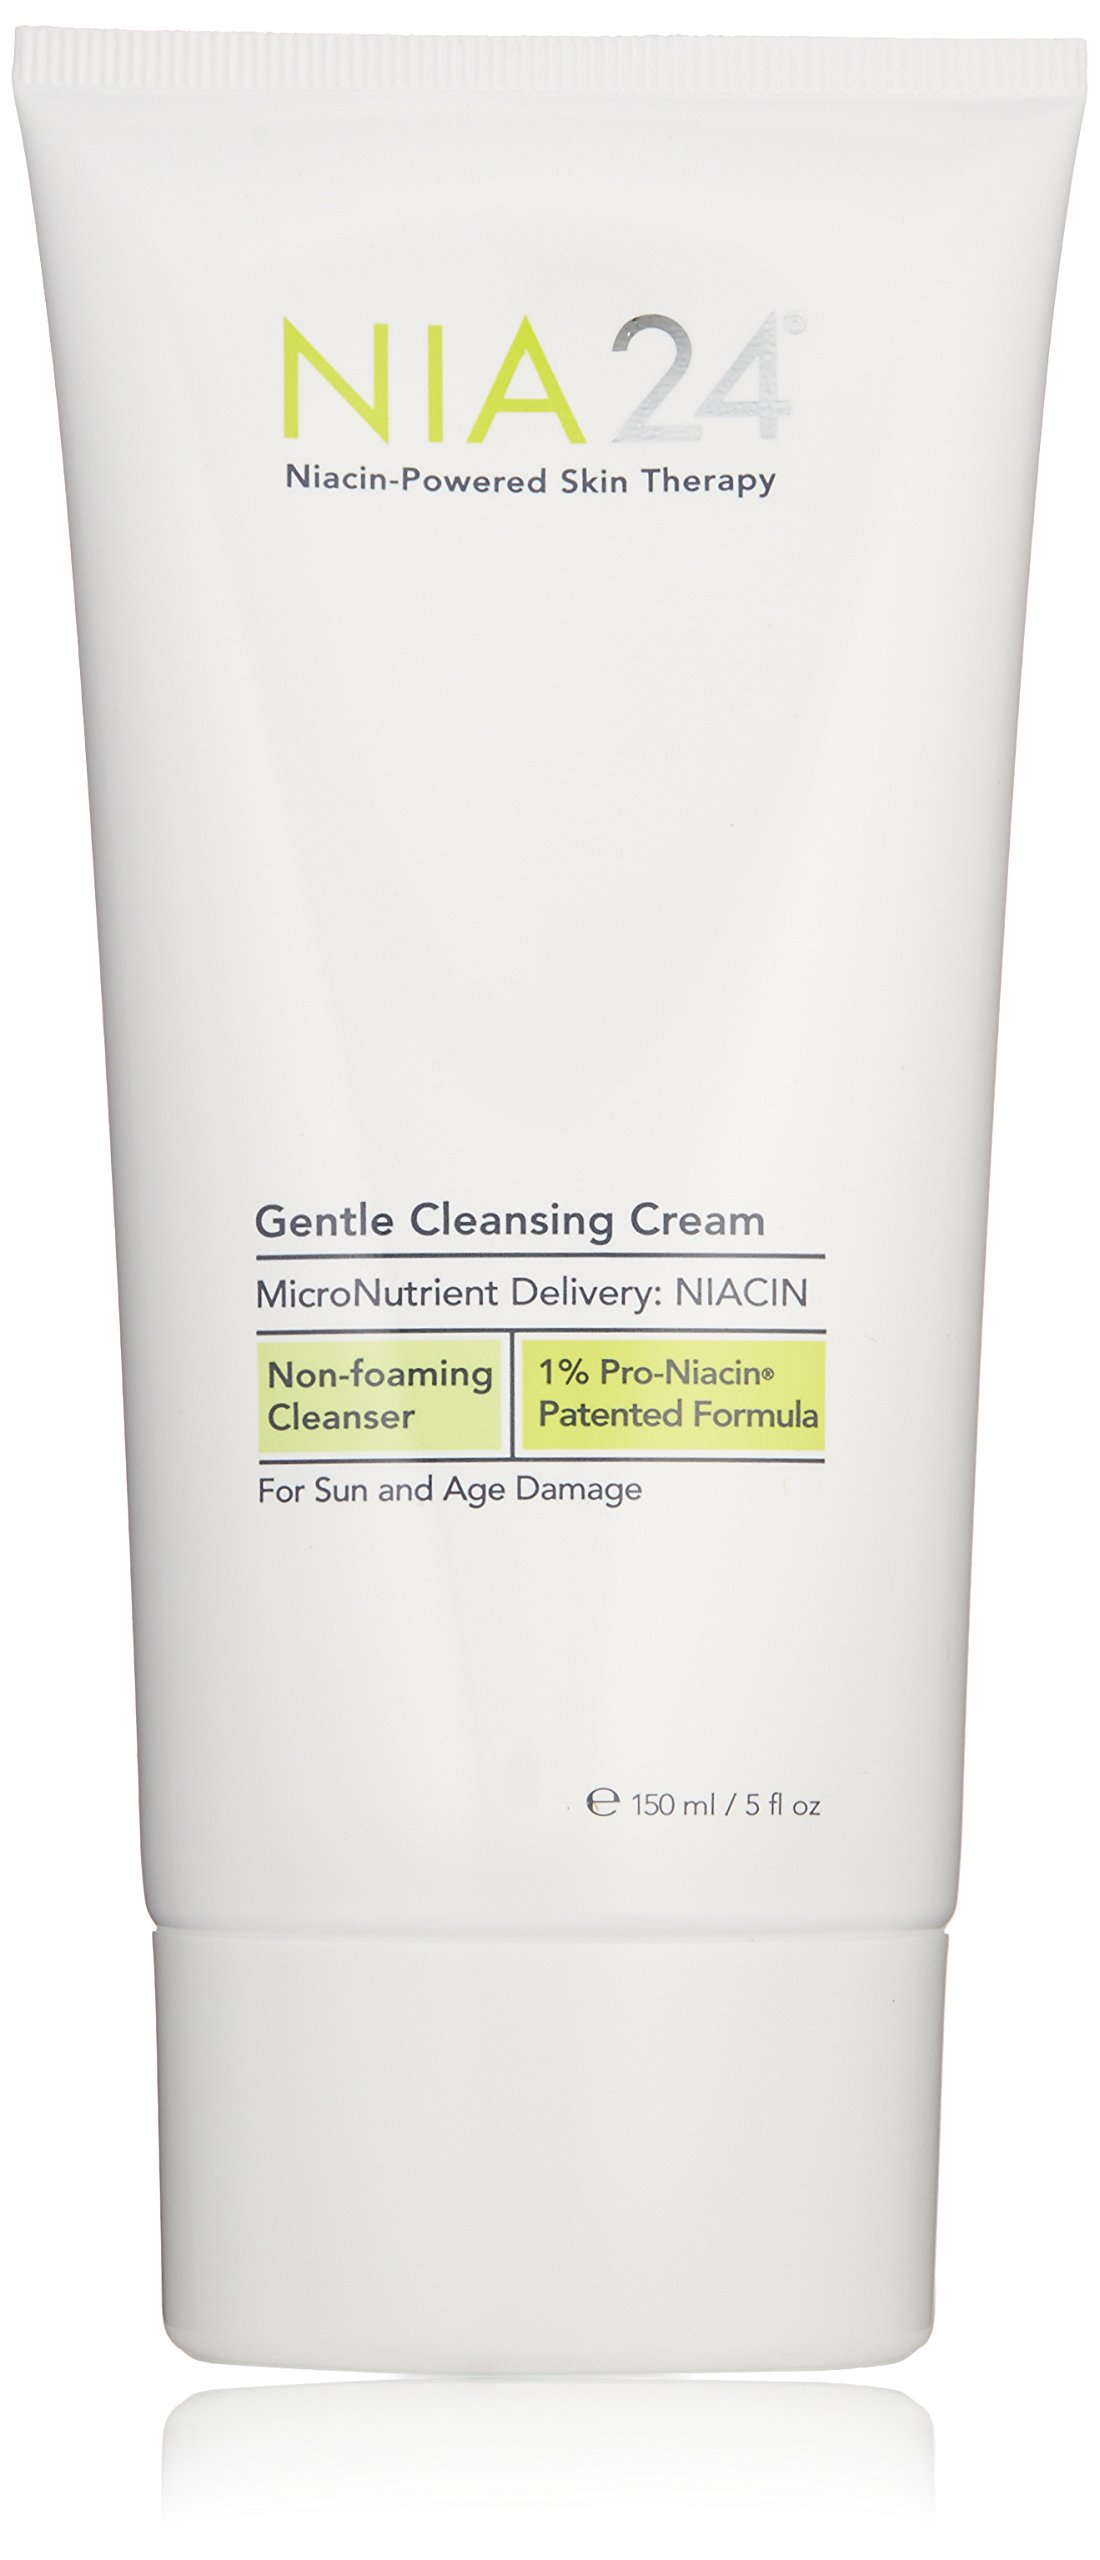 Nia 24 Gentle Cleansing Cream, 5 fl. oz.